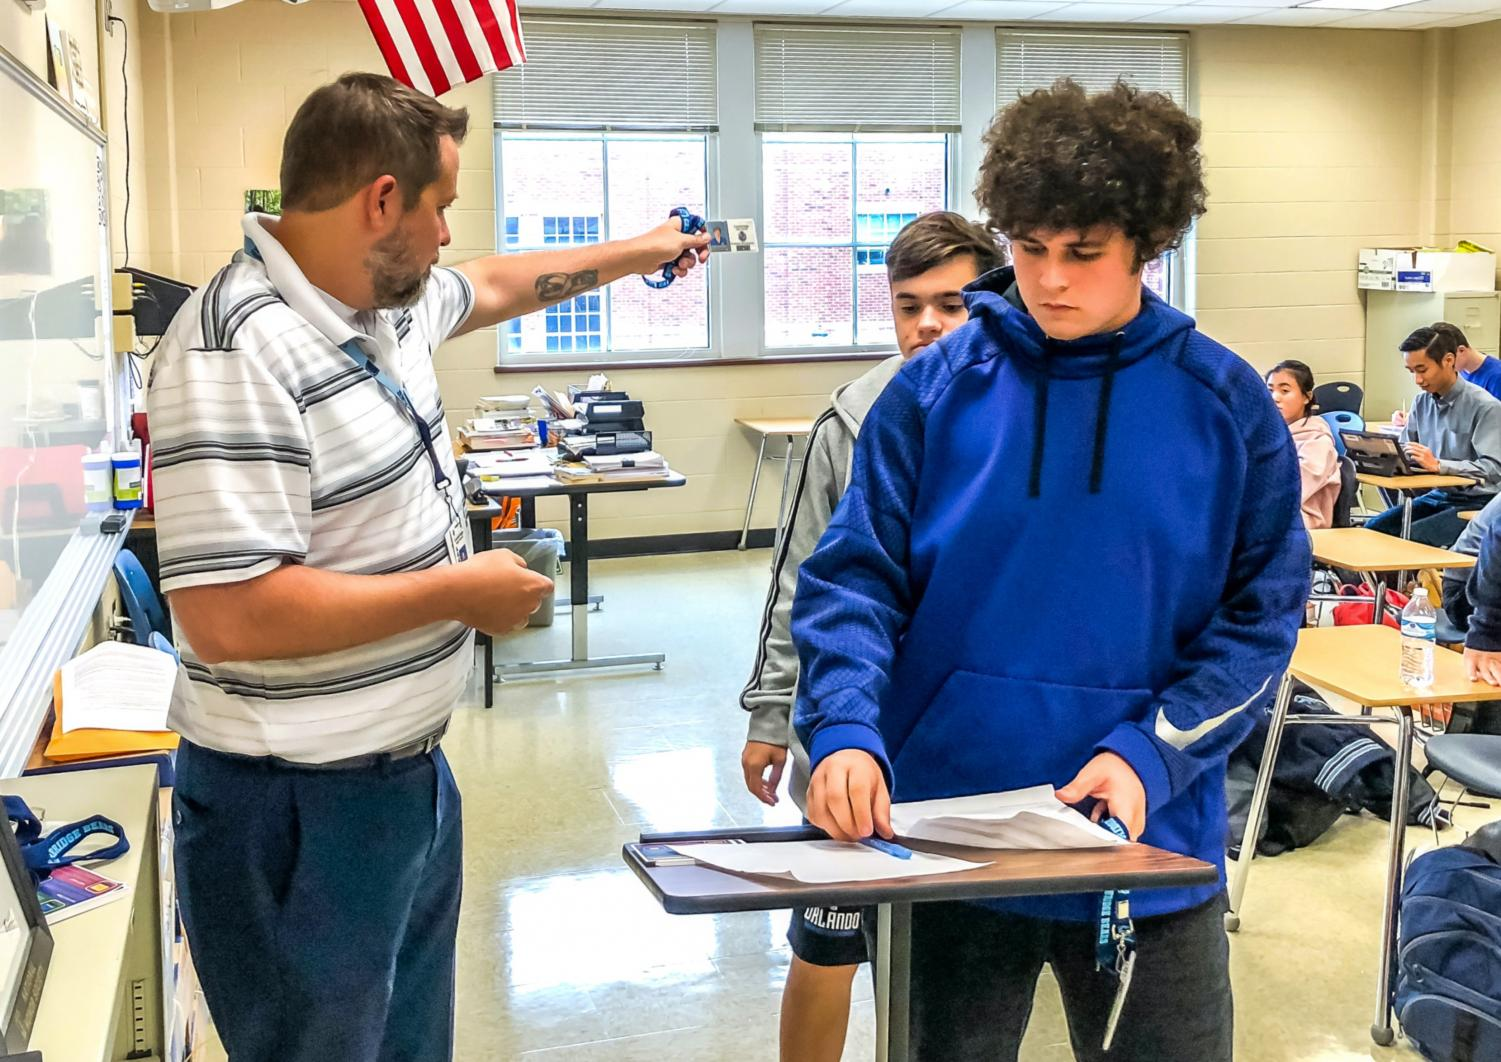 English teacher Jon Karschnik distributes new student IDs with lanyards to his students during one of his classes.